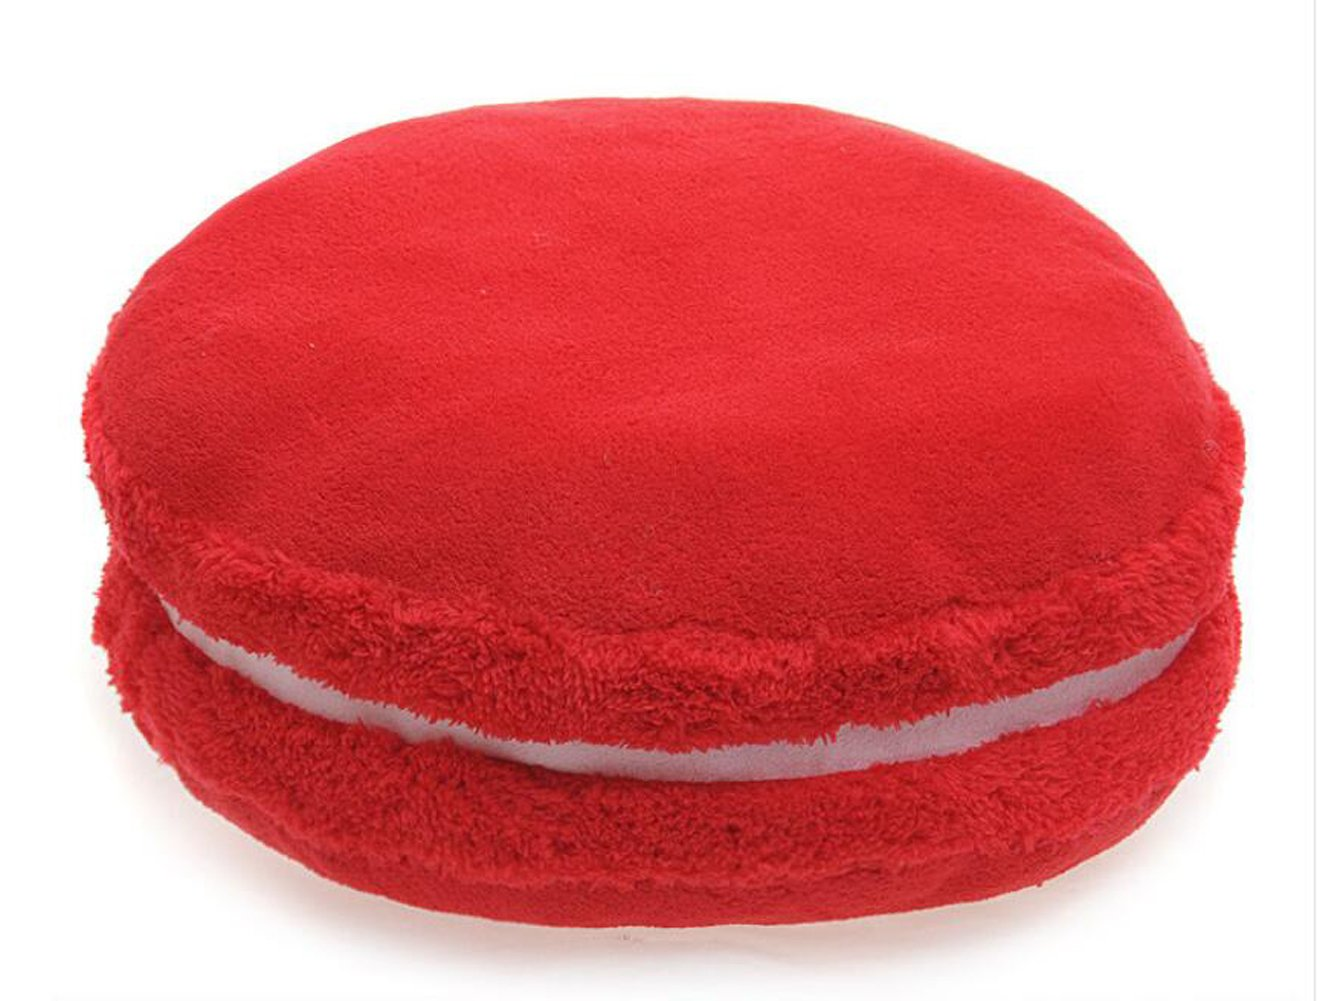 Peacewish Creative Sweet Color Cushion Plush Toy Round Pillow Decorative Throw Pillow (Bingo cherry)